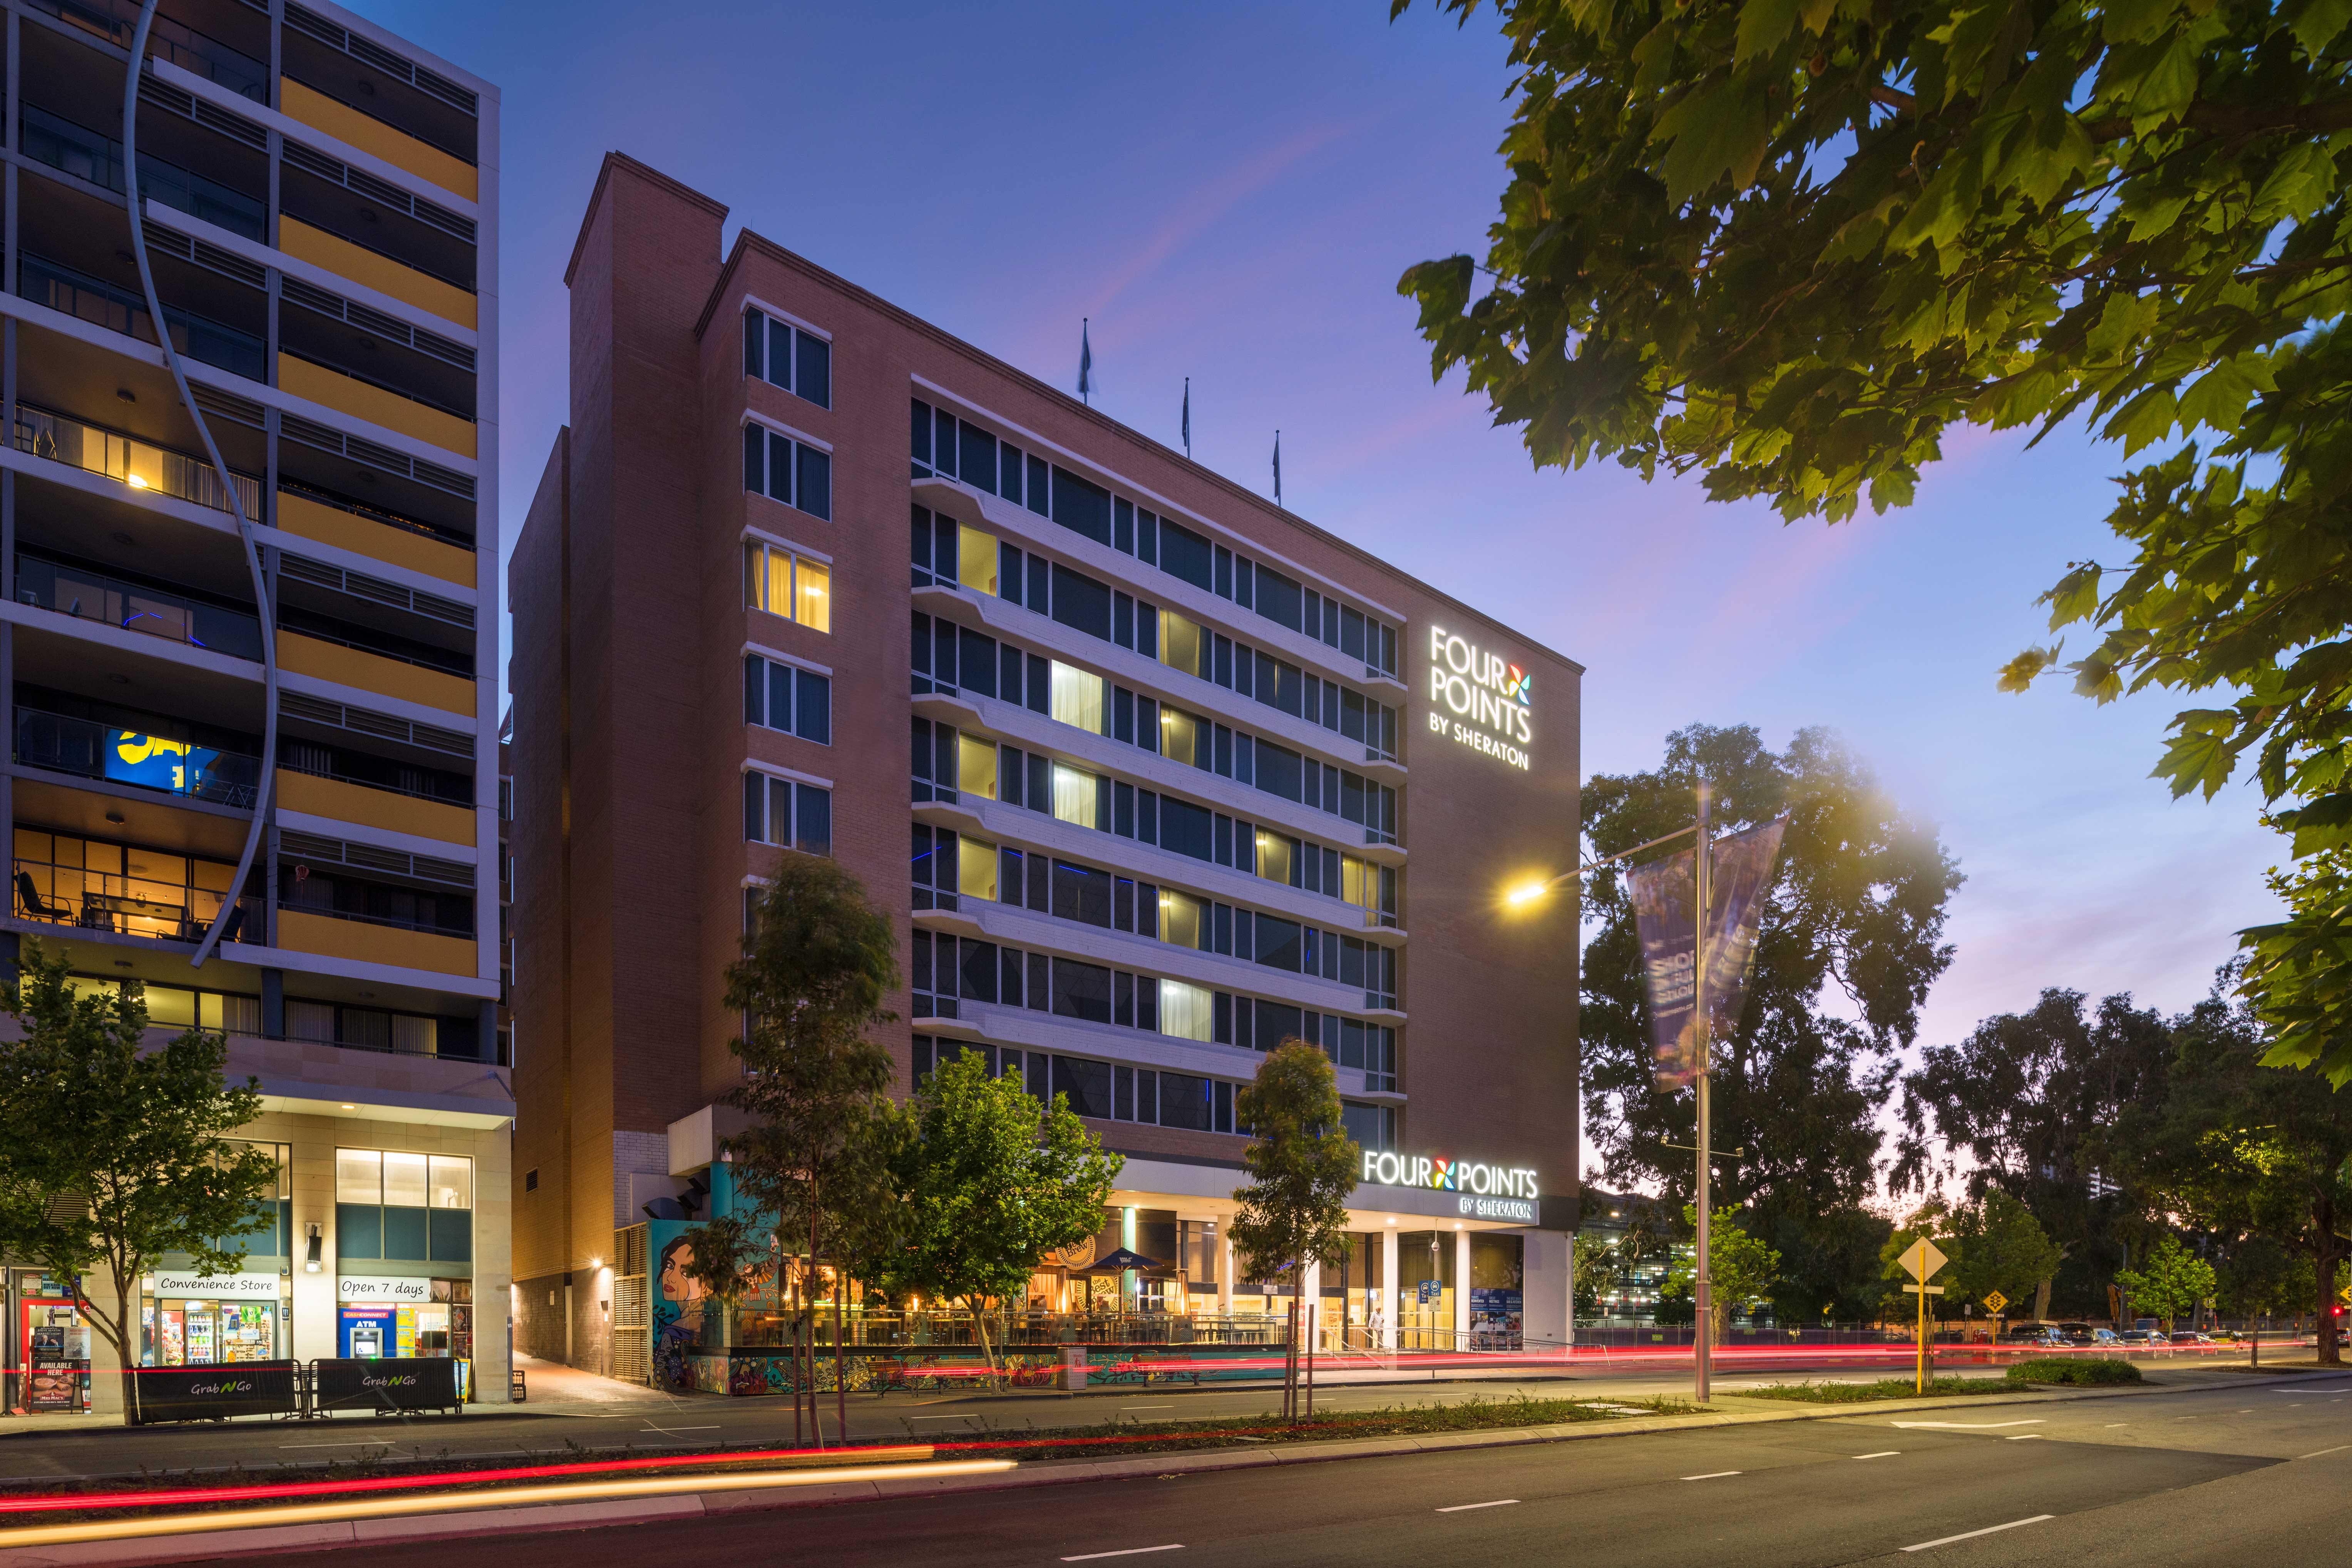 Enjoy stunning views at Four Points by Sheraton Perth Hotel